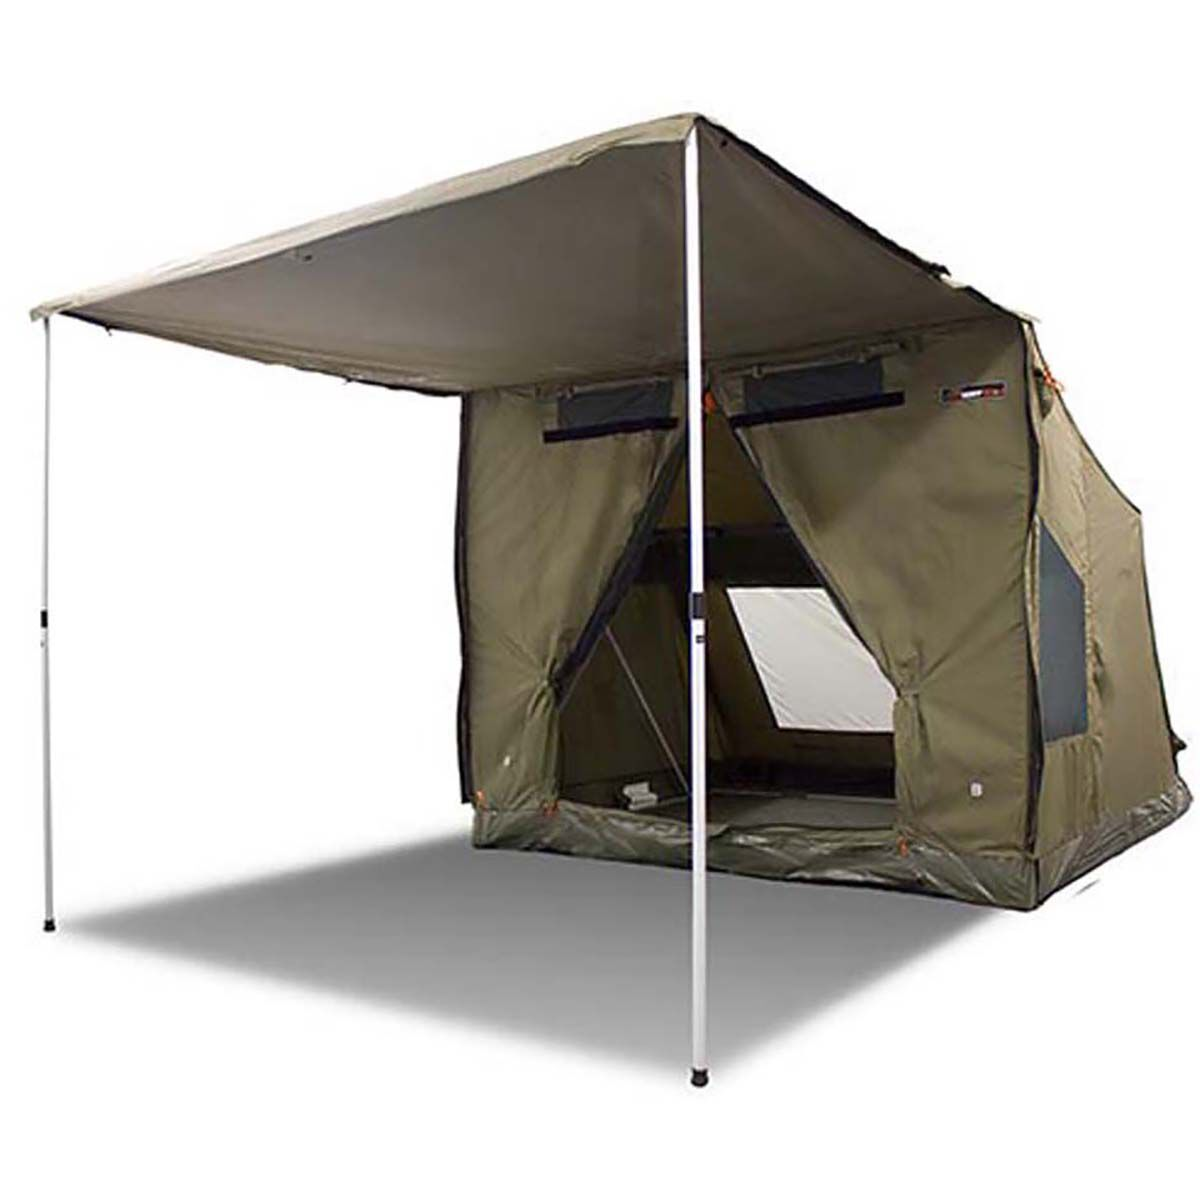 Oztent RV4 Touring Tent 4 Person  @ BCF